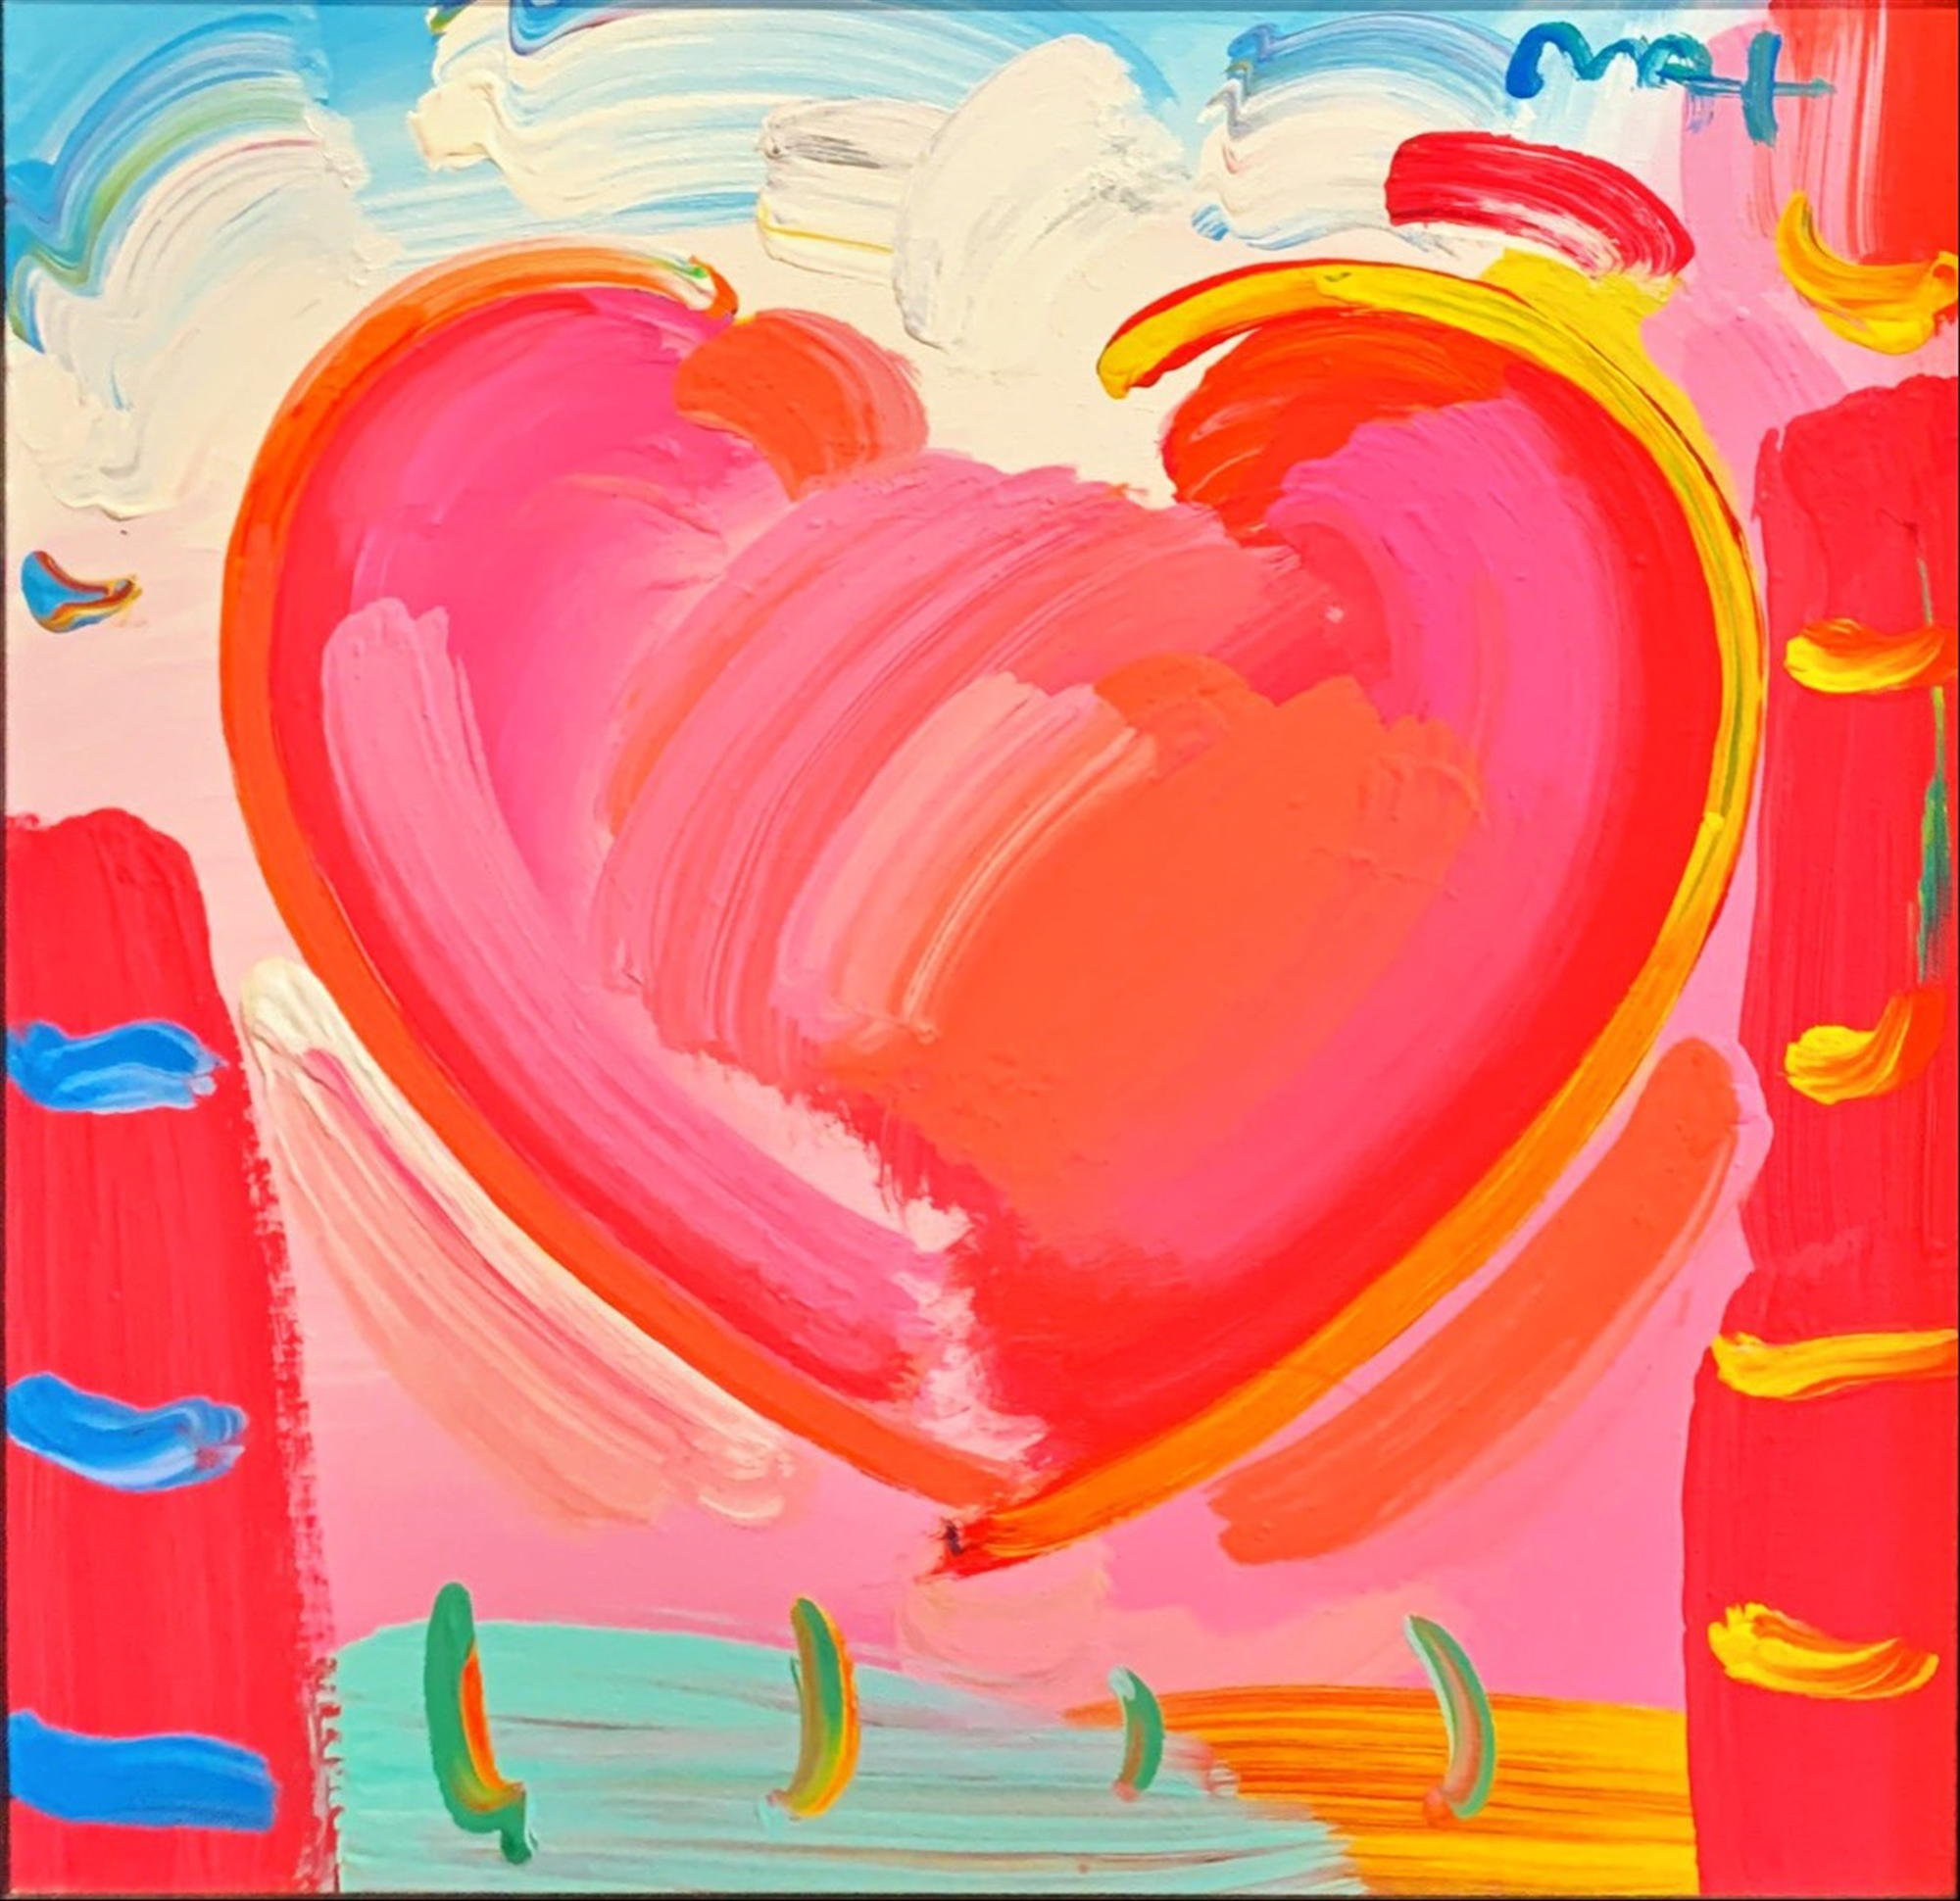 No Title by Peter Max